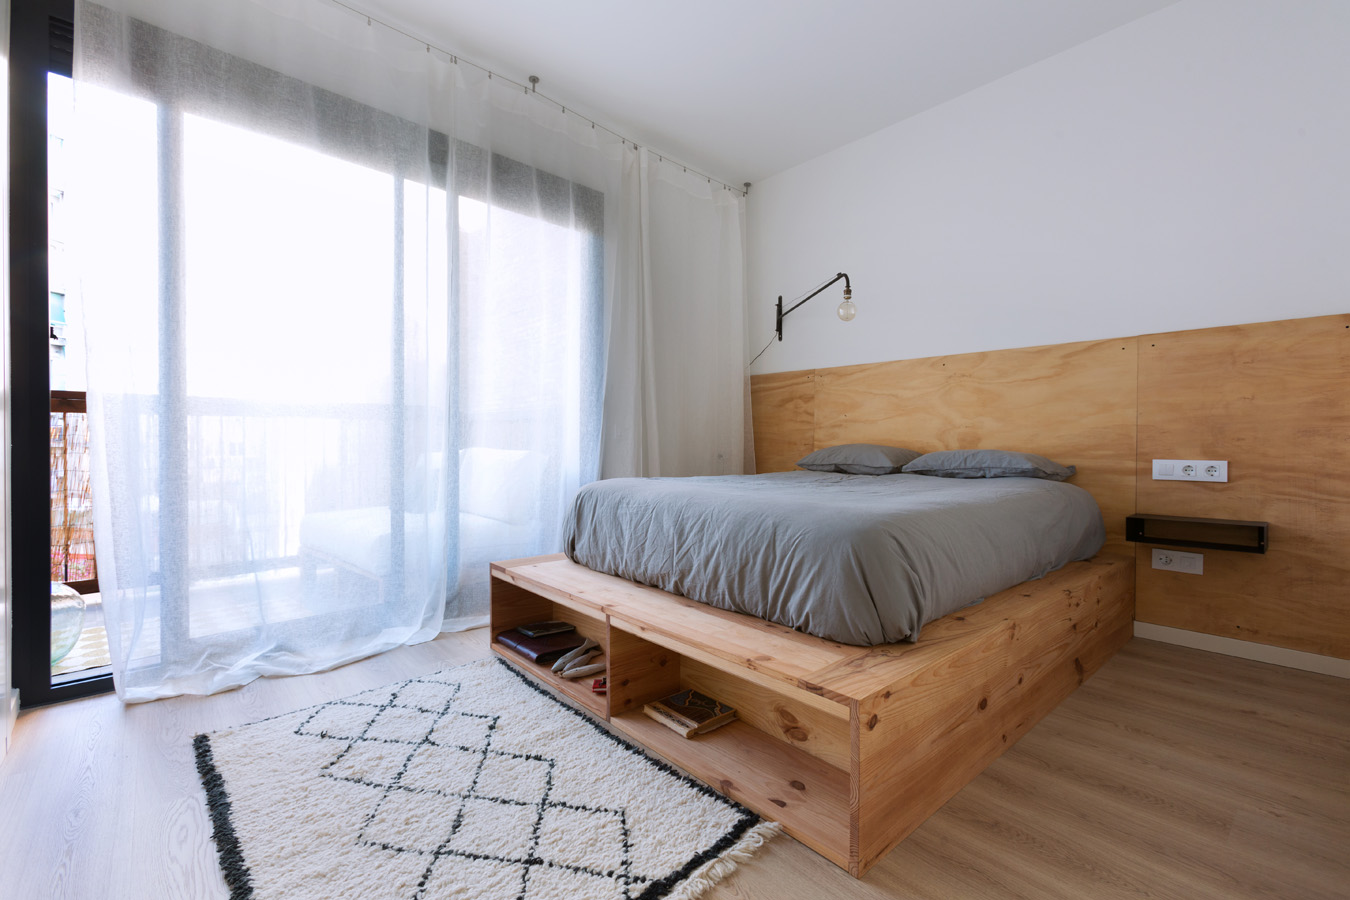 wooden double bed in stylish interior setting